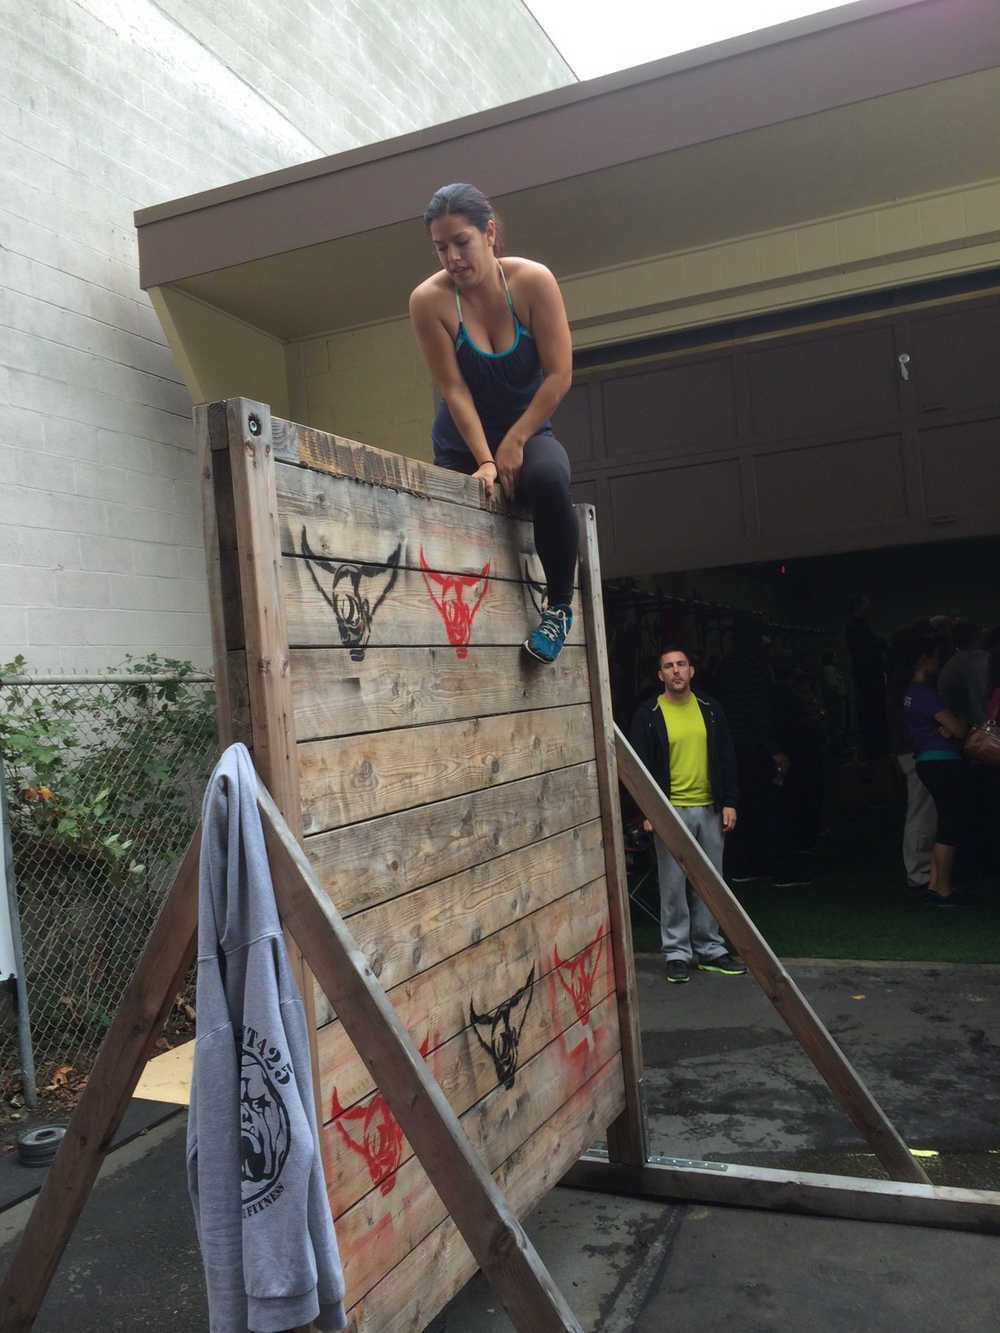 Jen climbing the Wall during the surprise WOD